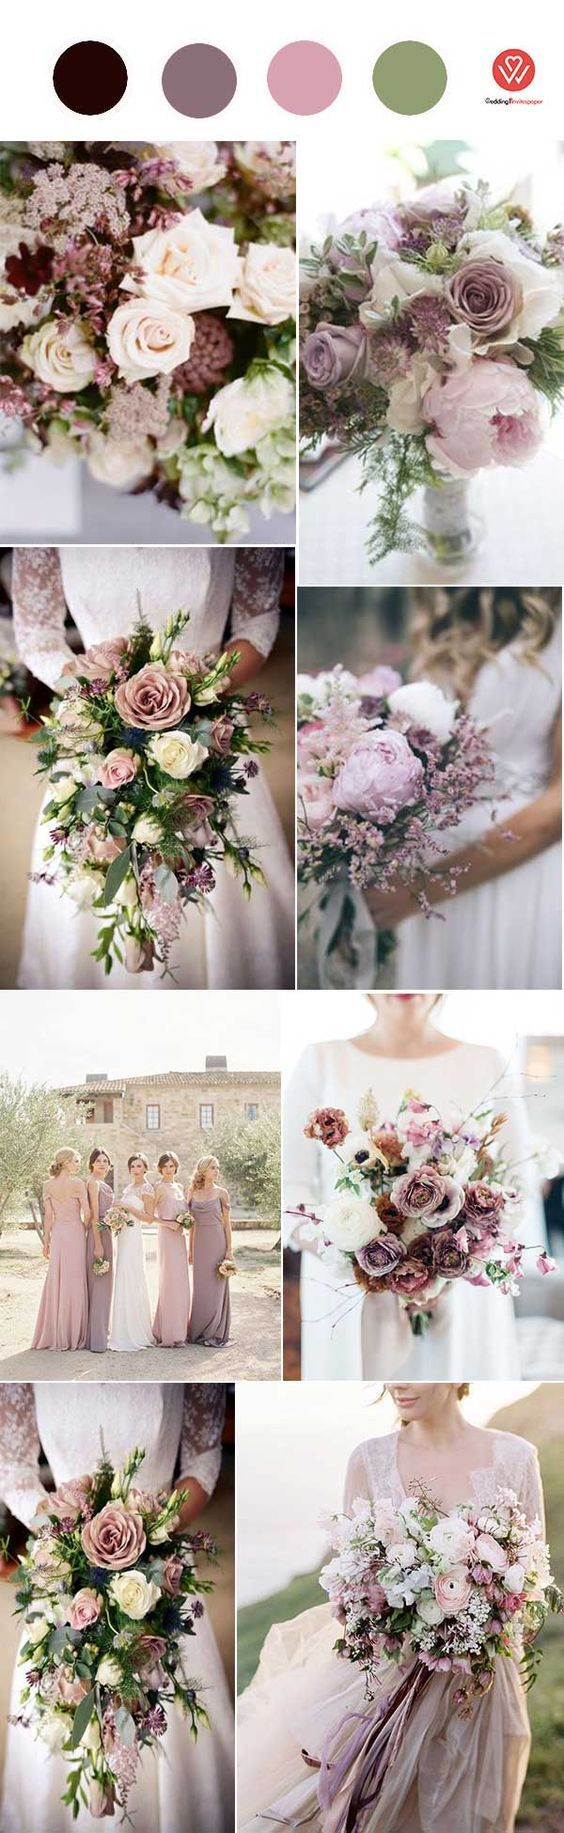 THE HOTTEST15 MAUVE WEDDING COLOR PALETTES FOR 2018 WEDDING NEW TREND  Wedding Invites Paper is part of Mauve wedding colors -